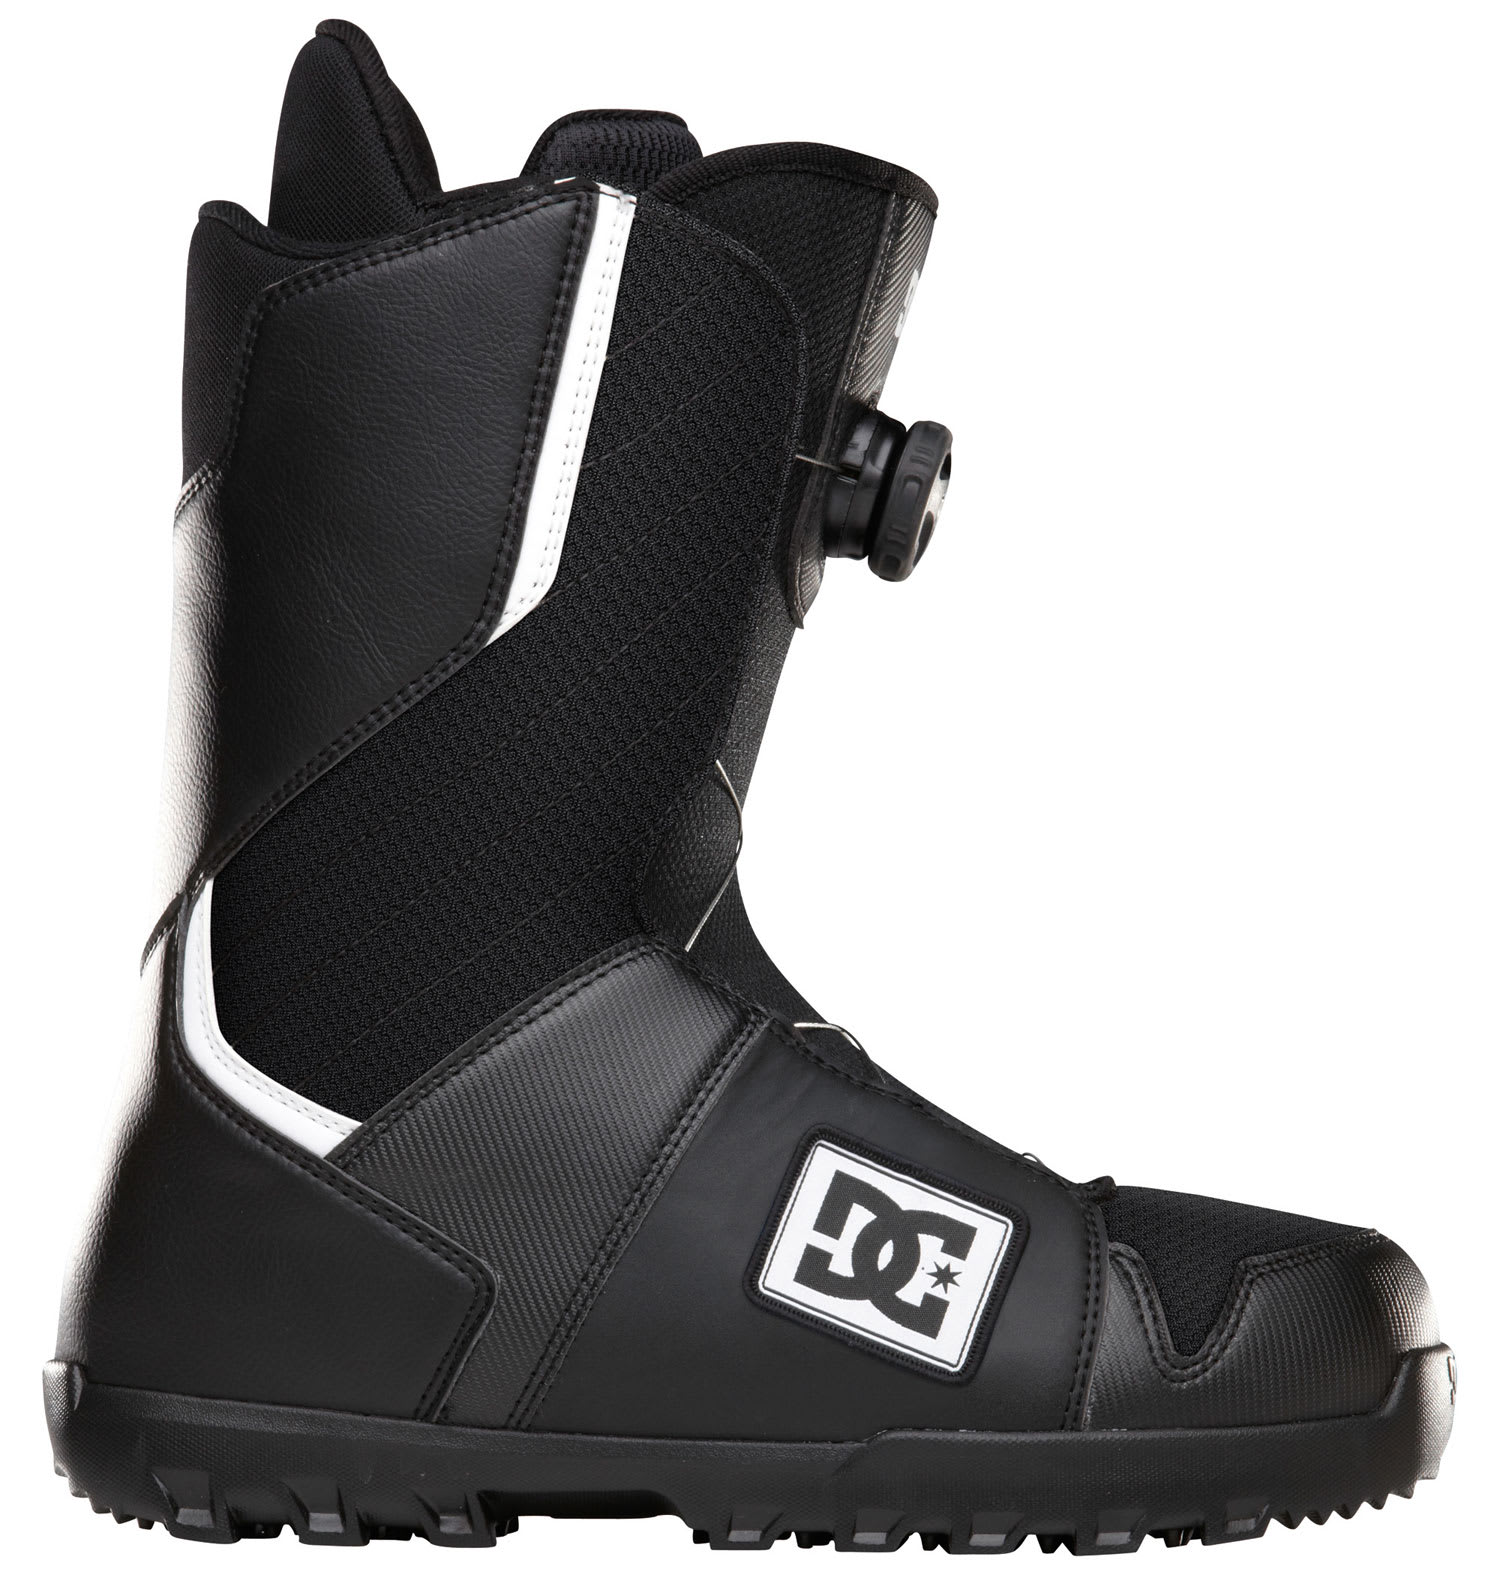 DC Scout Snowboard Boots Black/White - Men's